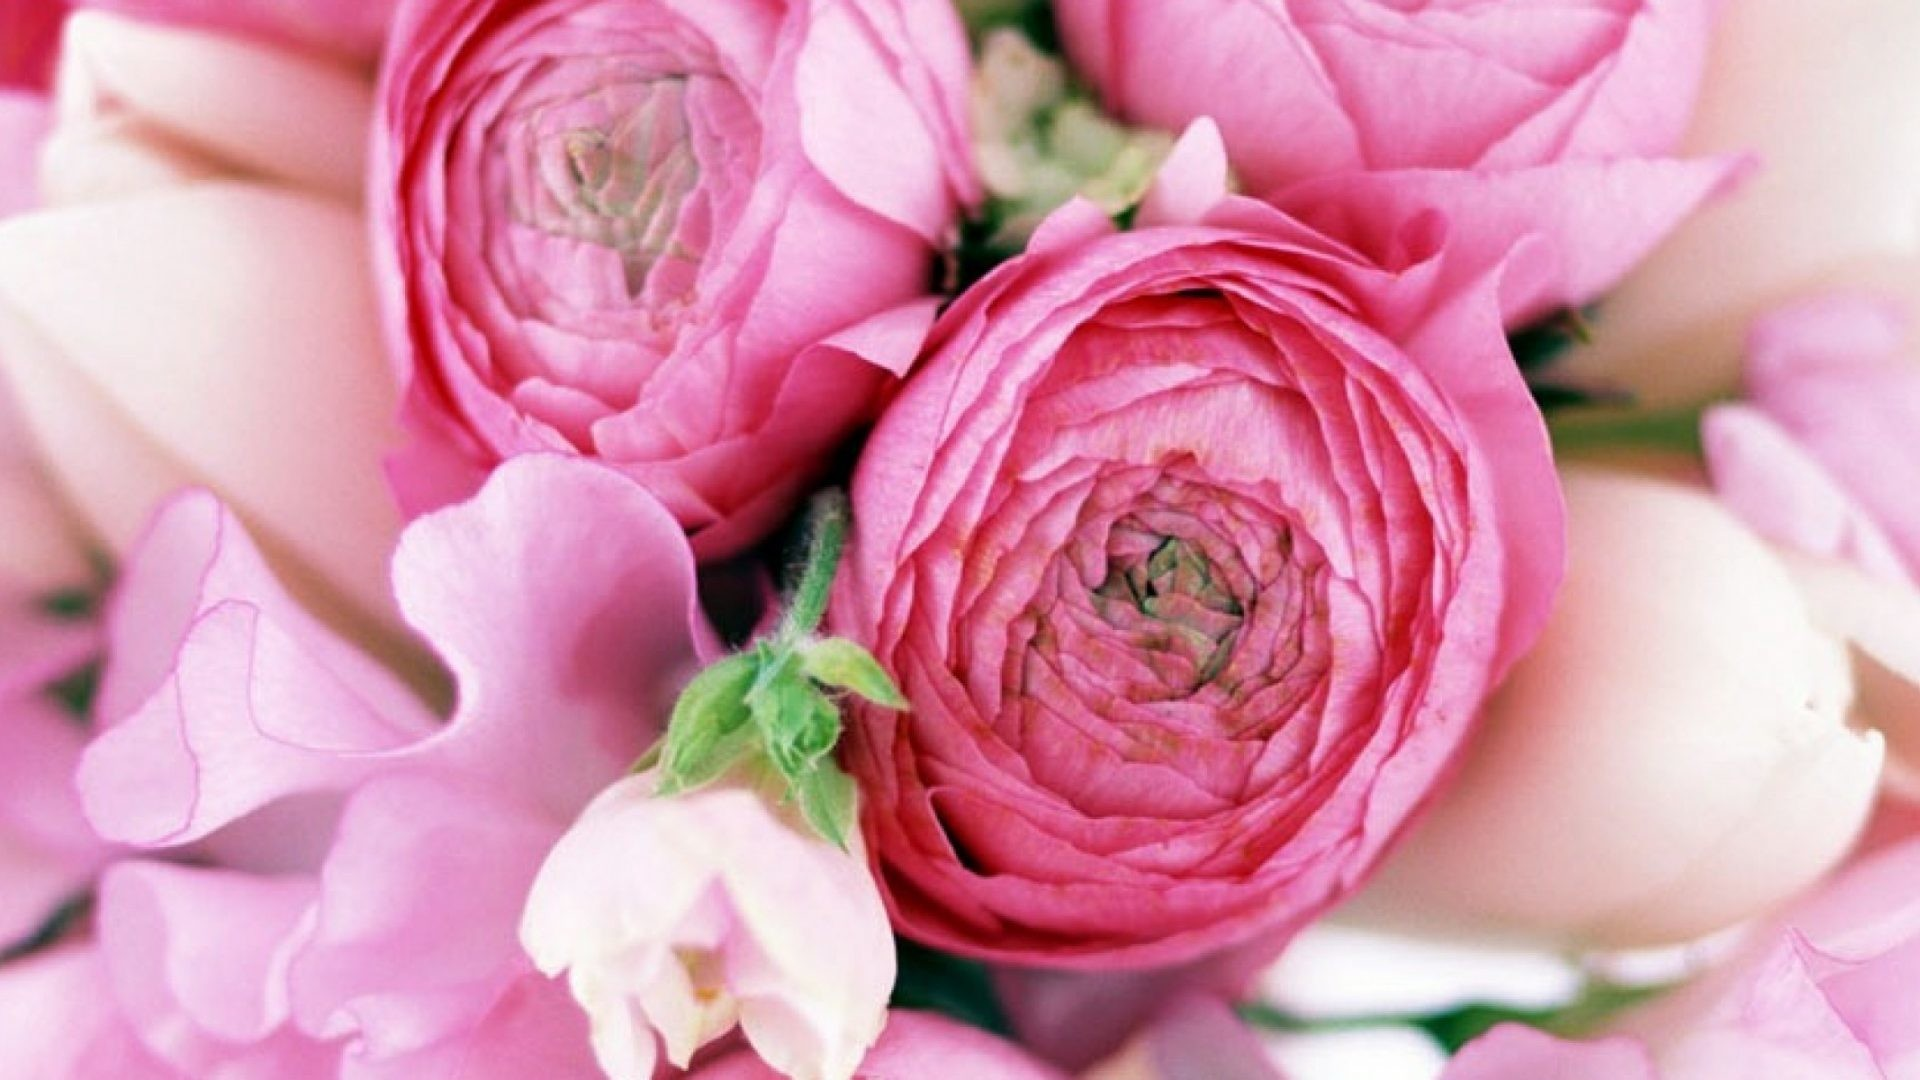 Res: 1920x1080, Pink Peonies Flowers Pretty Peoniies Flower Picture Wallpaper Free